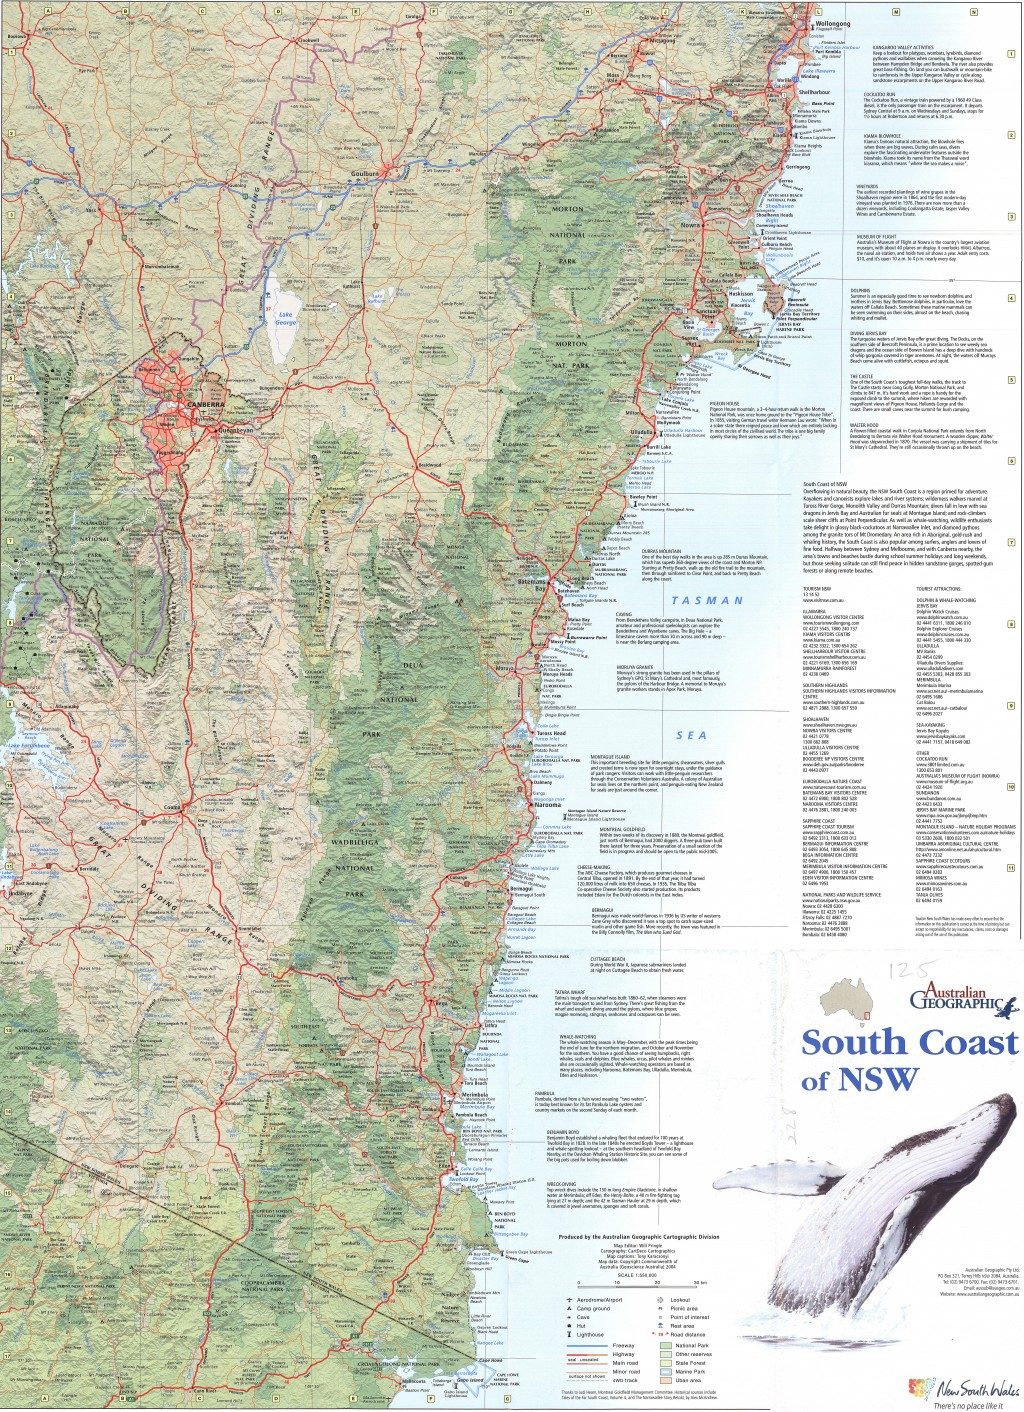 NSW South Coast map Australian Geographic